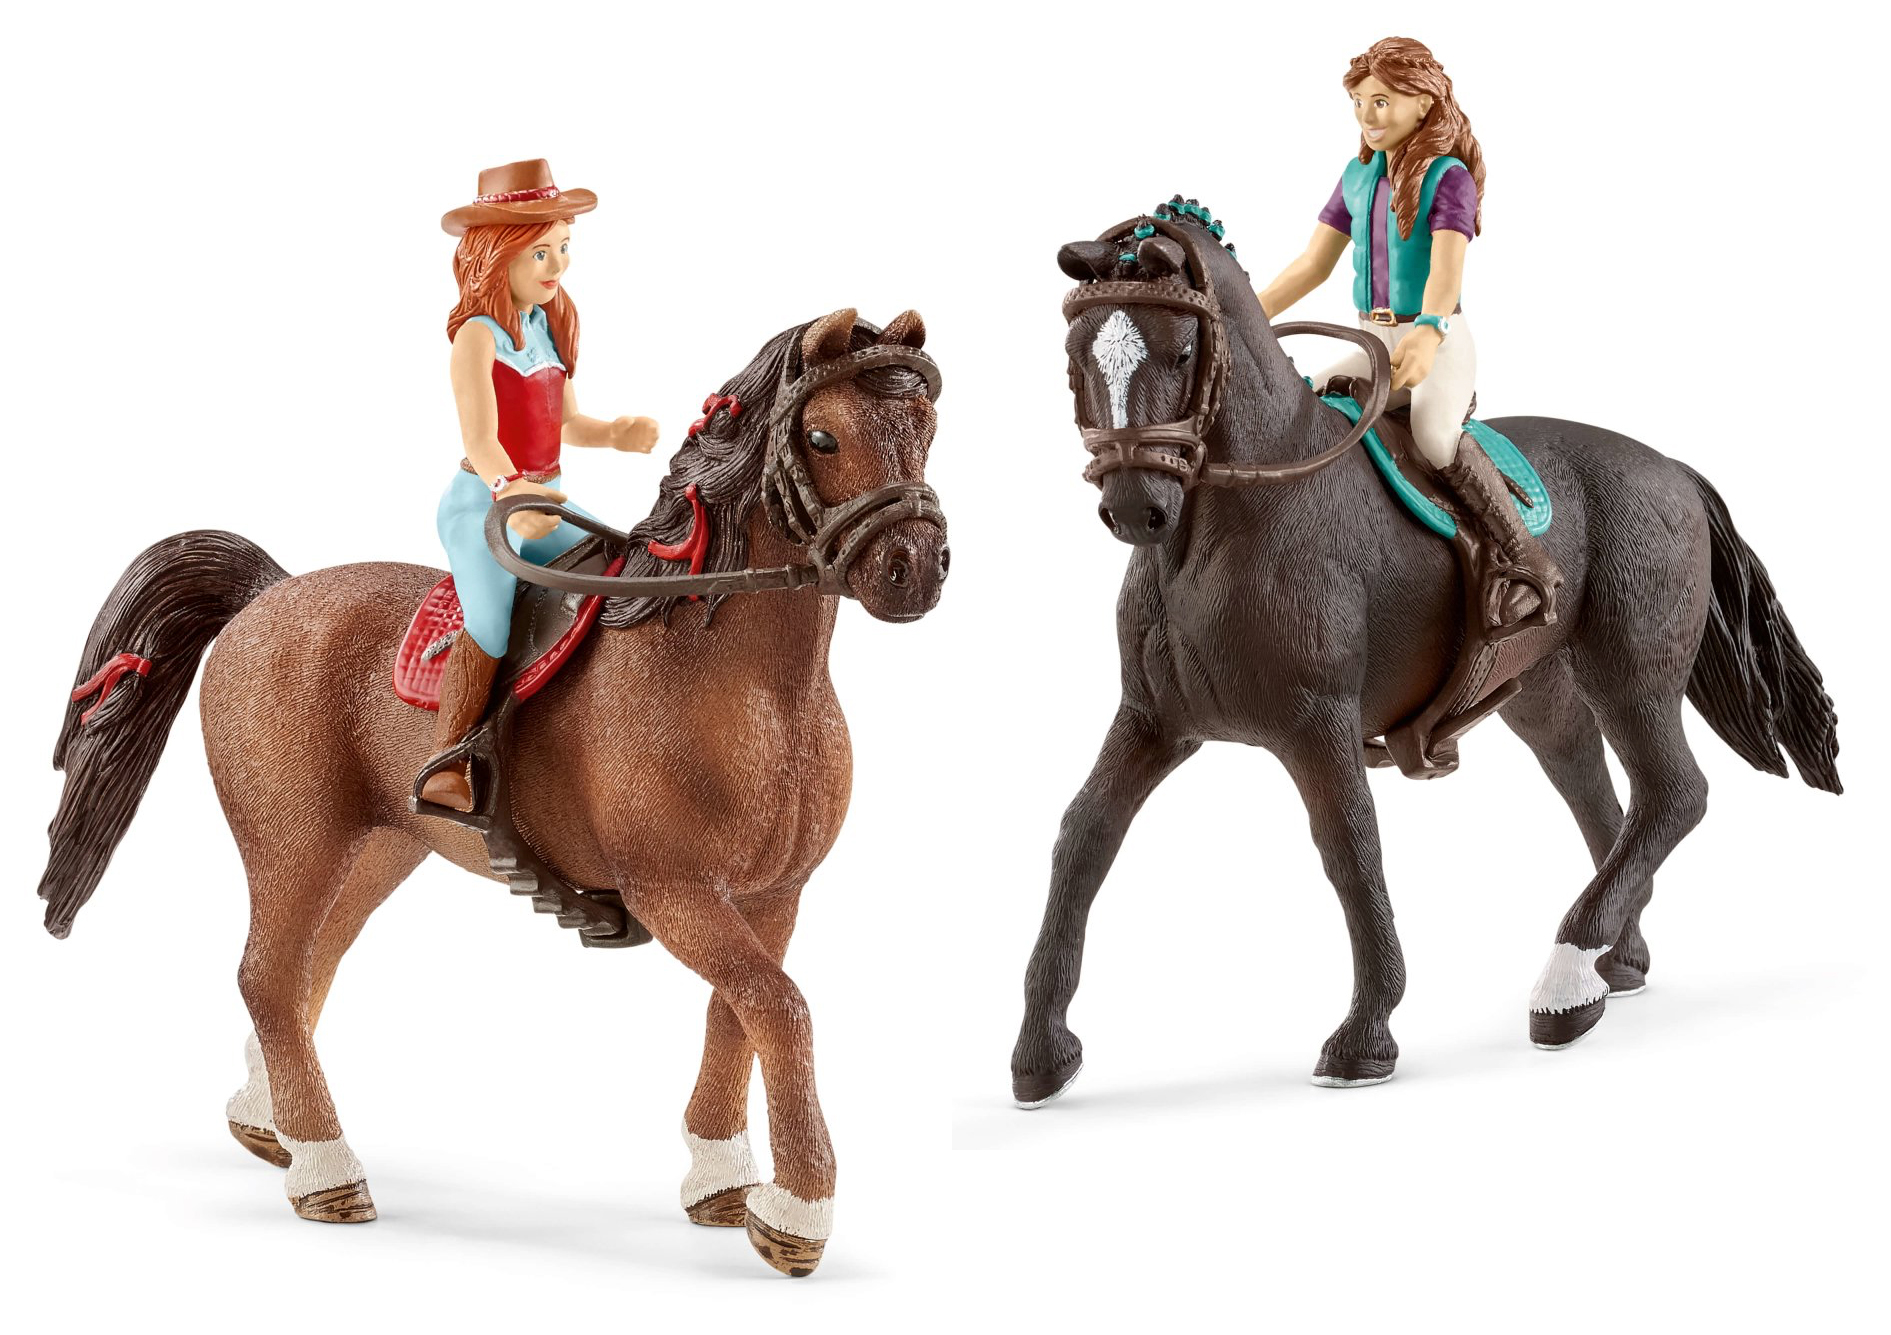 Schleich Mobile Vet Set Review - horse figurines